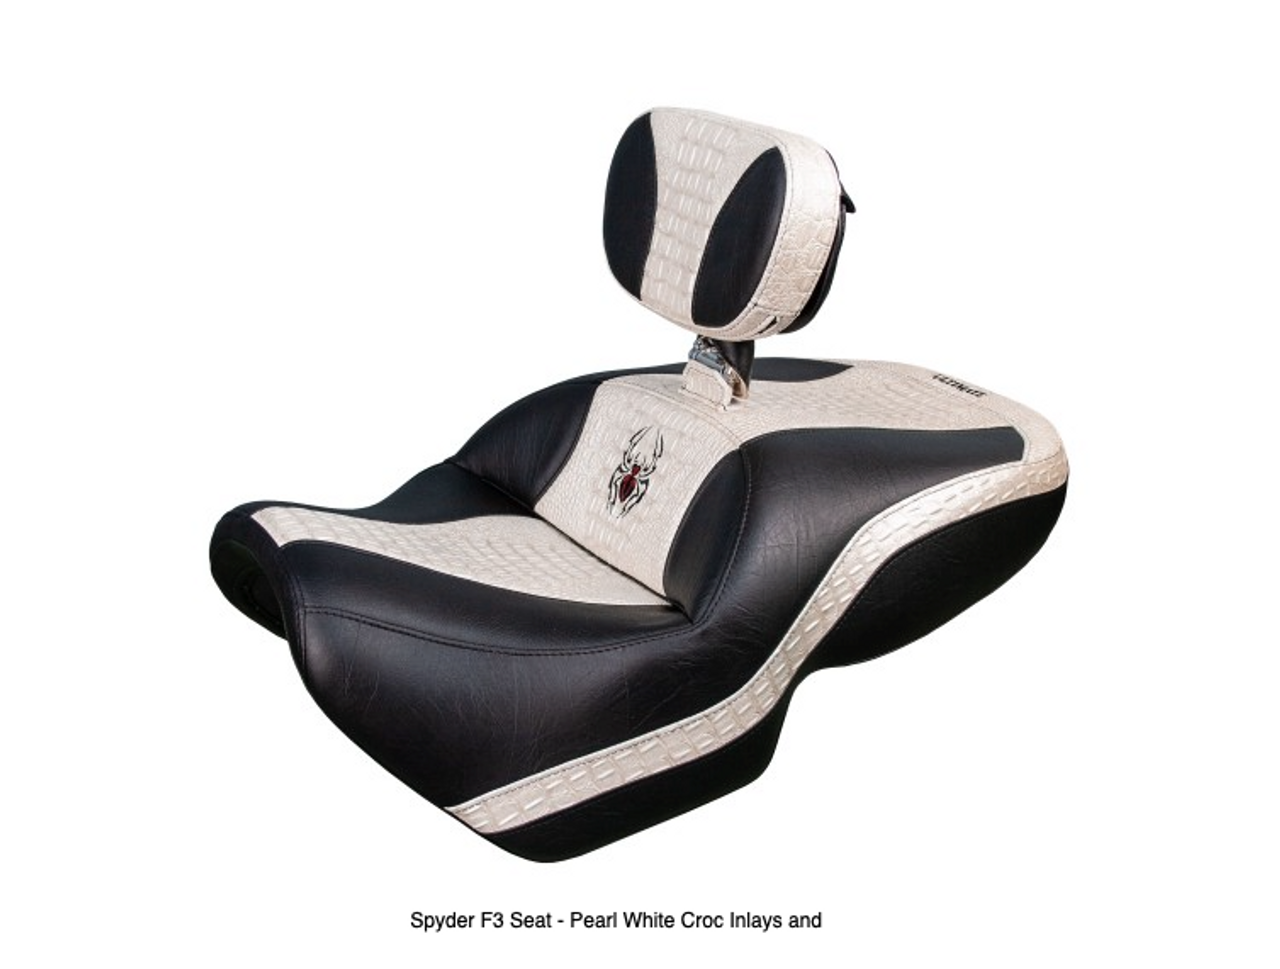 Ultimate Seat, Can Am Spyder F3 (2015 - Present) Spyder F3 Seat - Pearl White Croc Inlays and Logos